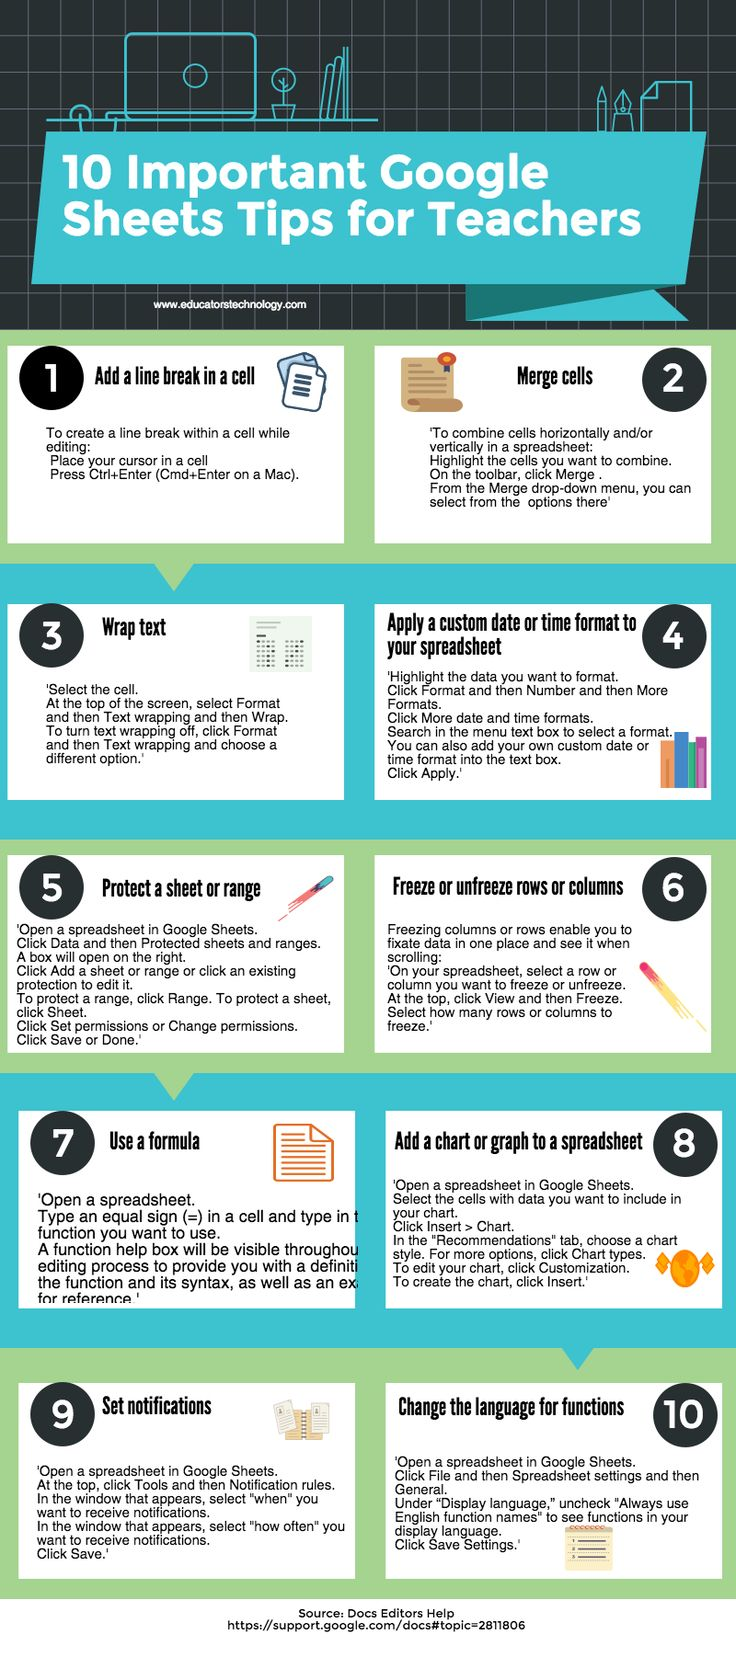 February 7, 2017 After Google Docs poster, here is the one we promised to prepare for Google Sheets. Our purpose behind these visuals is to highlight basic features teachers (and students) need to...